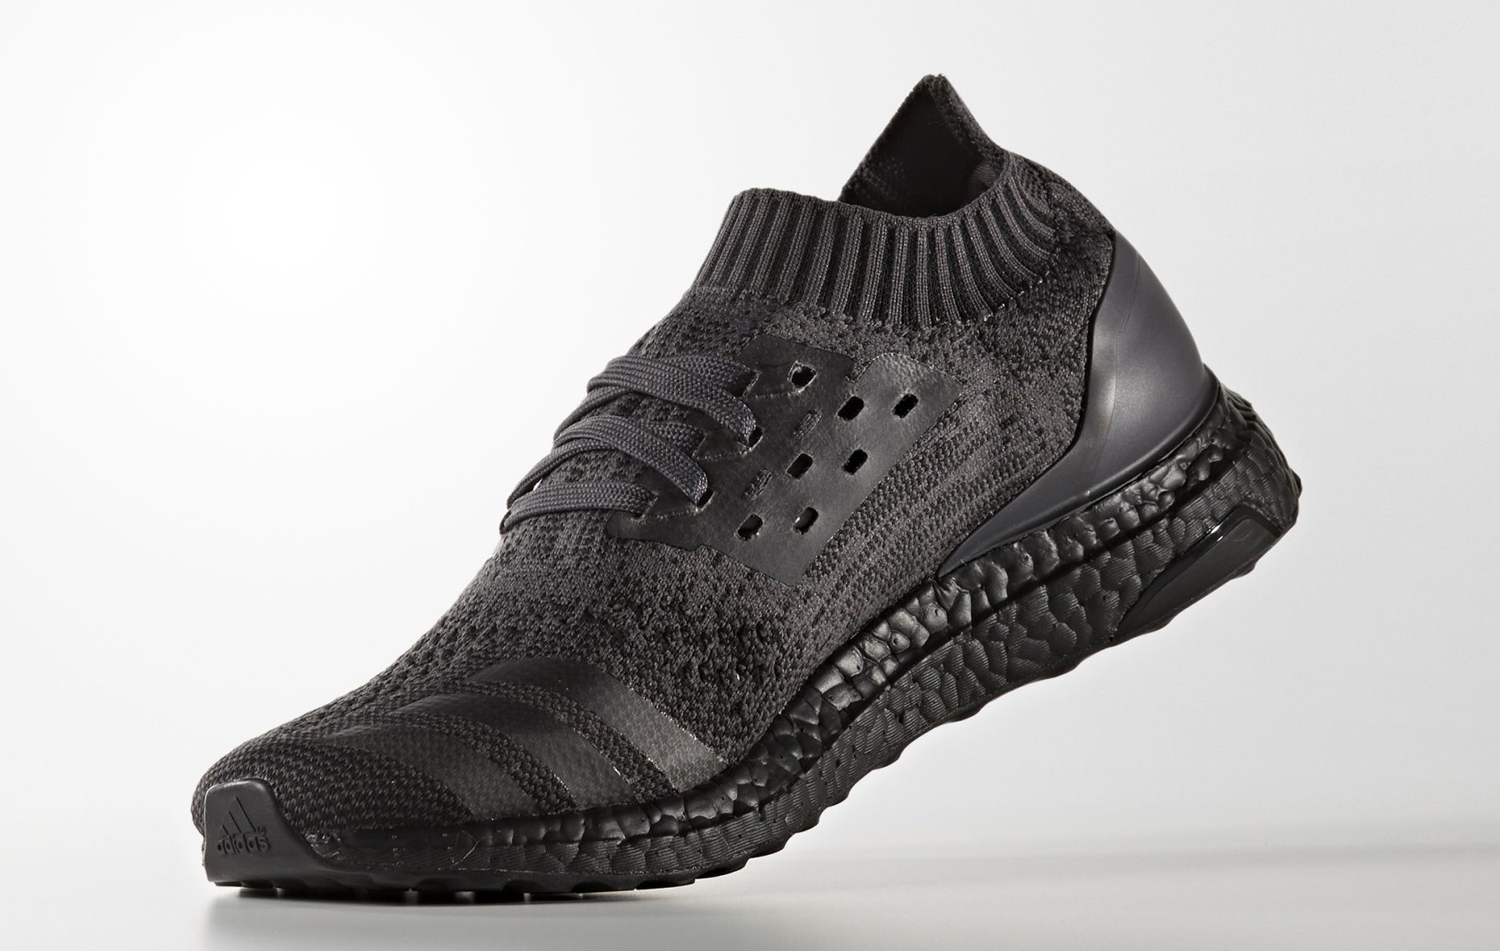 537a33e74b109 Triple Black Adidas Ultra Boost Uncaged Medial